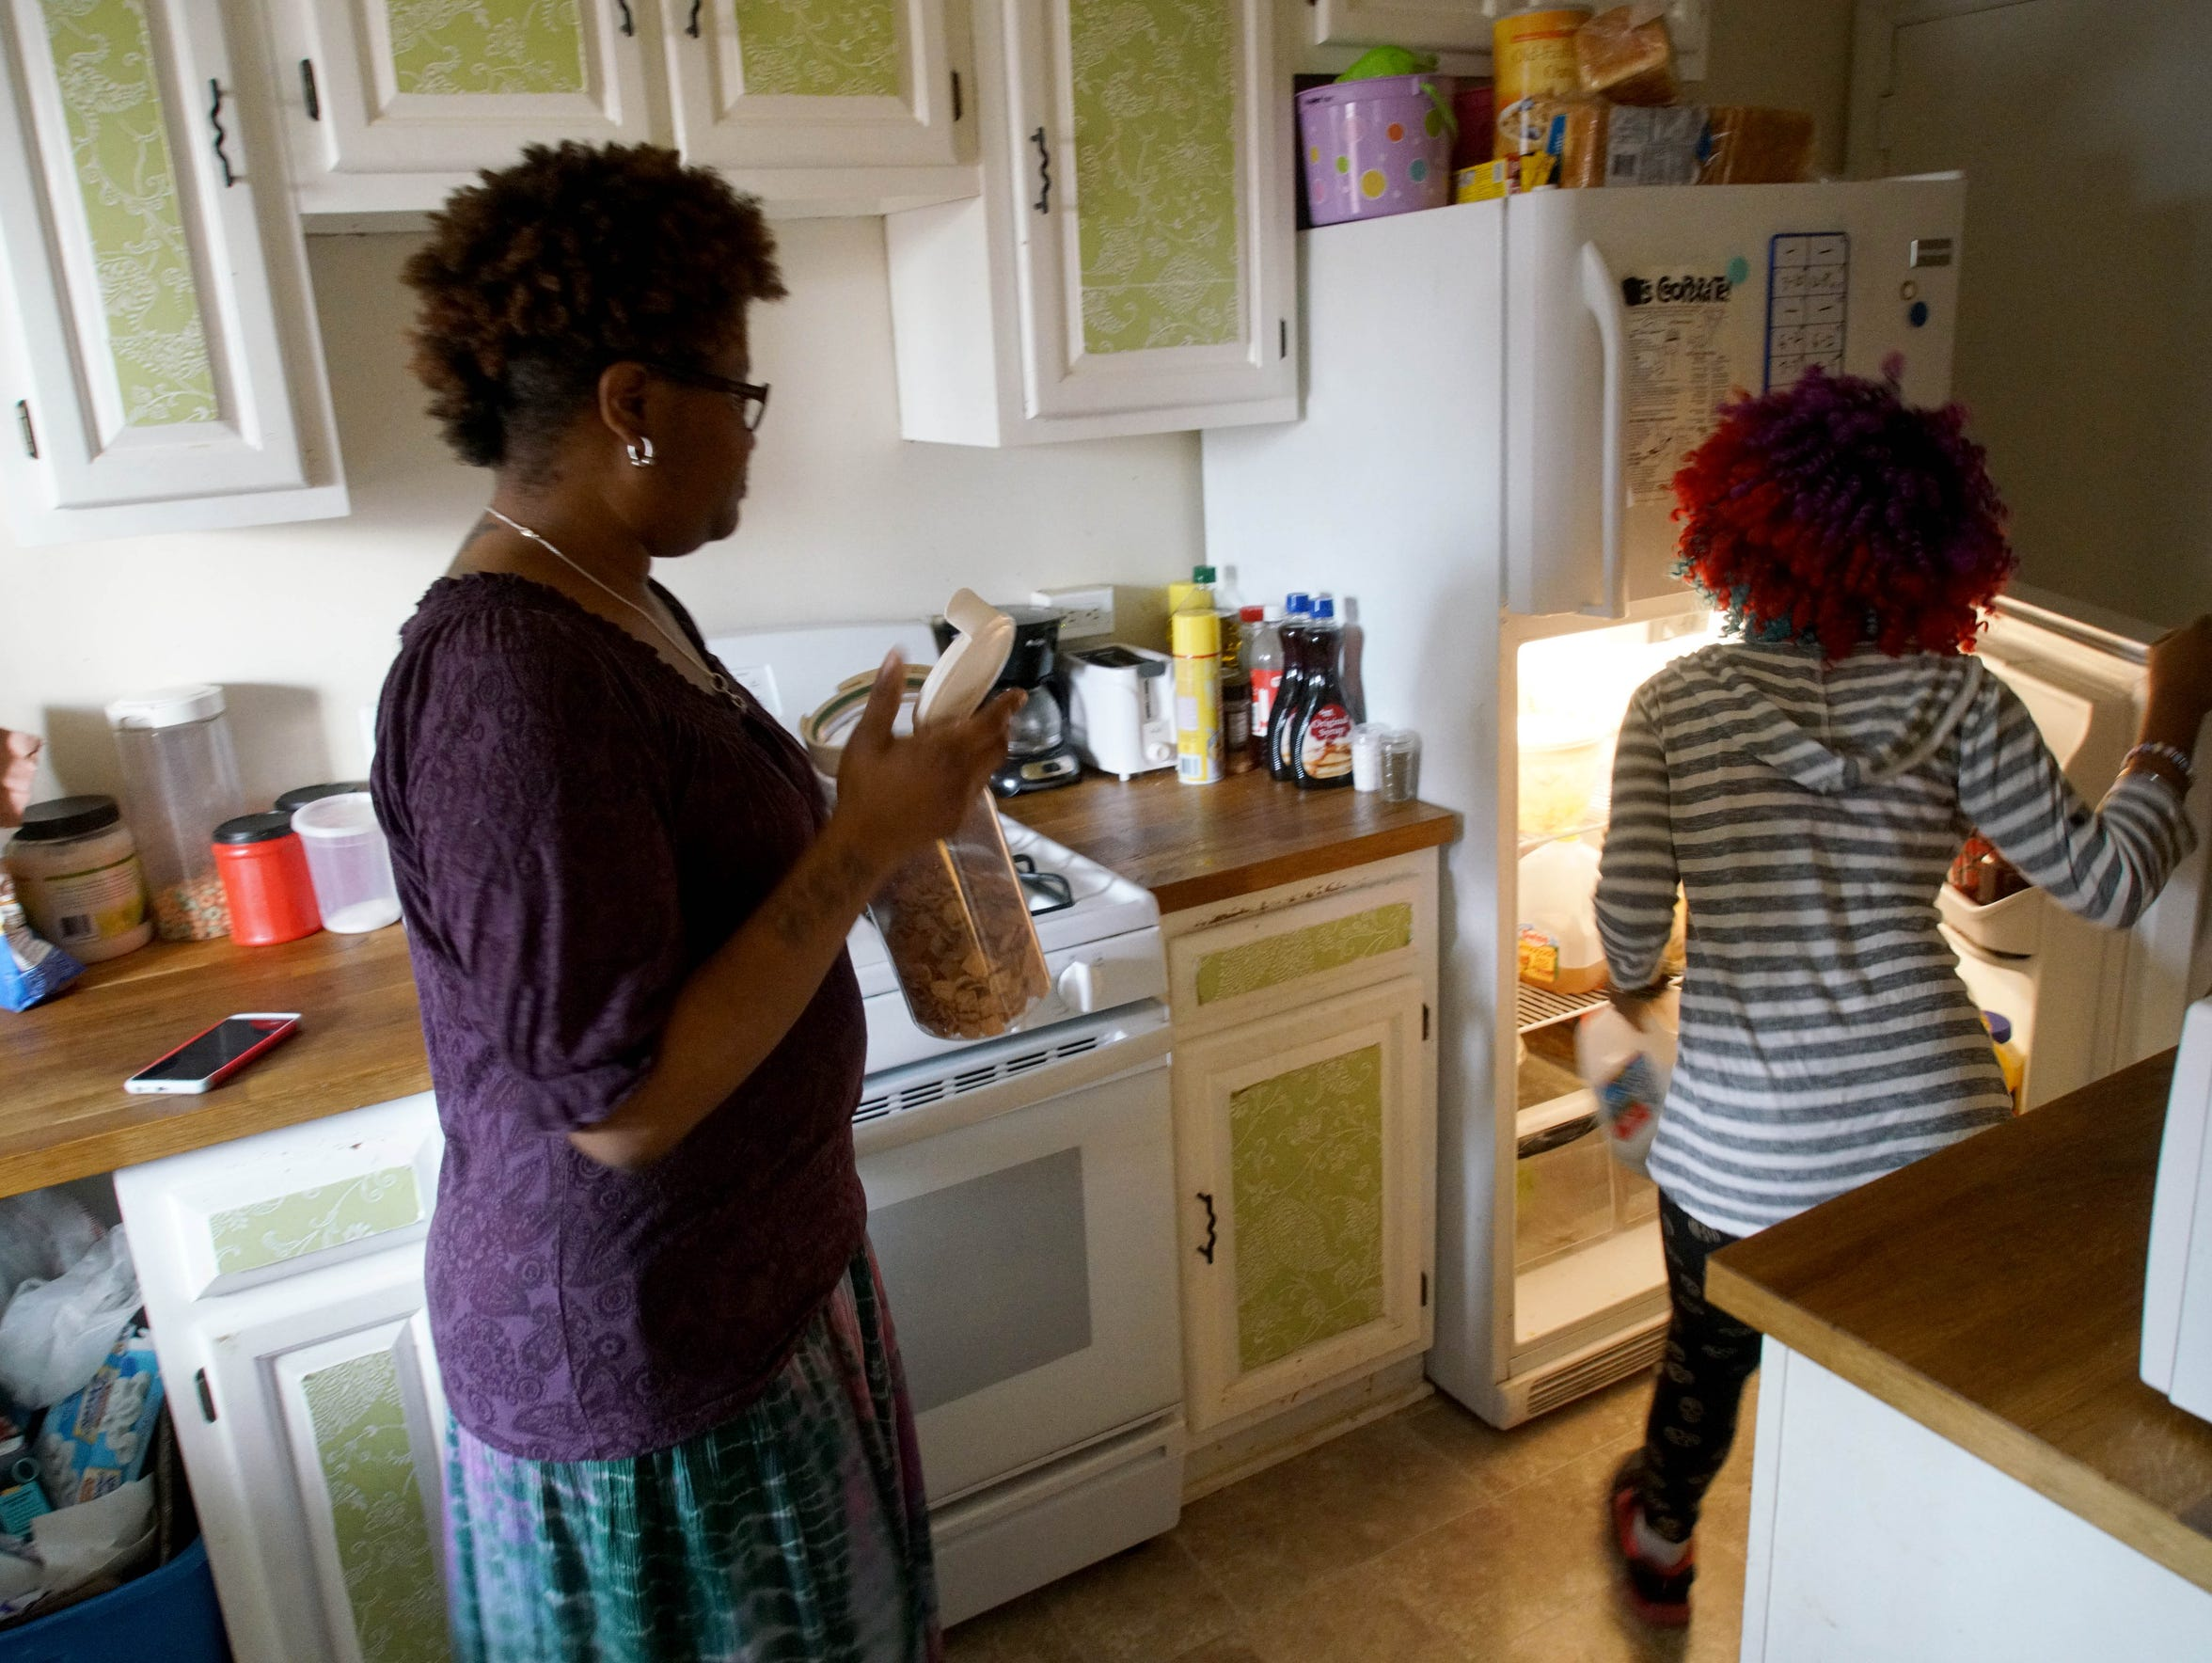 DeShanna helps fix a snack for her 13-year-old transgender